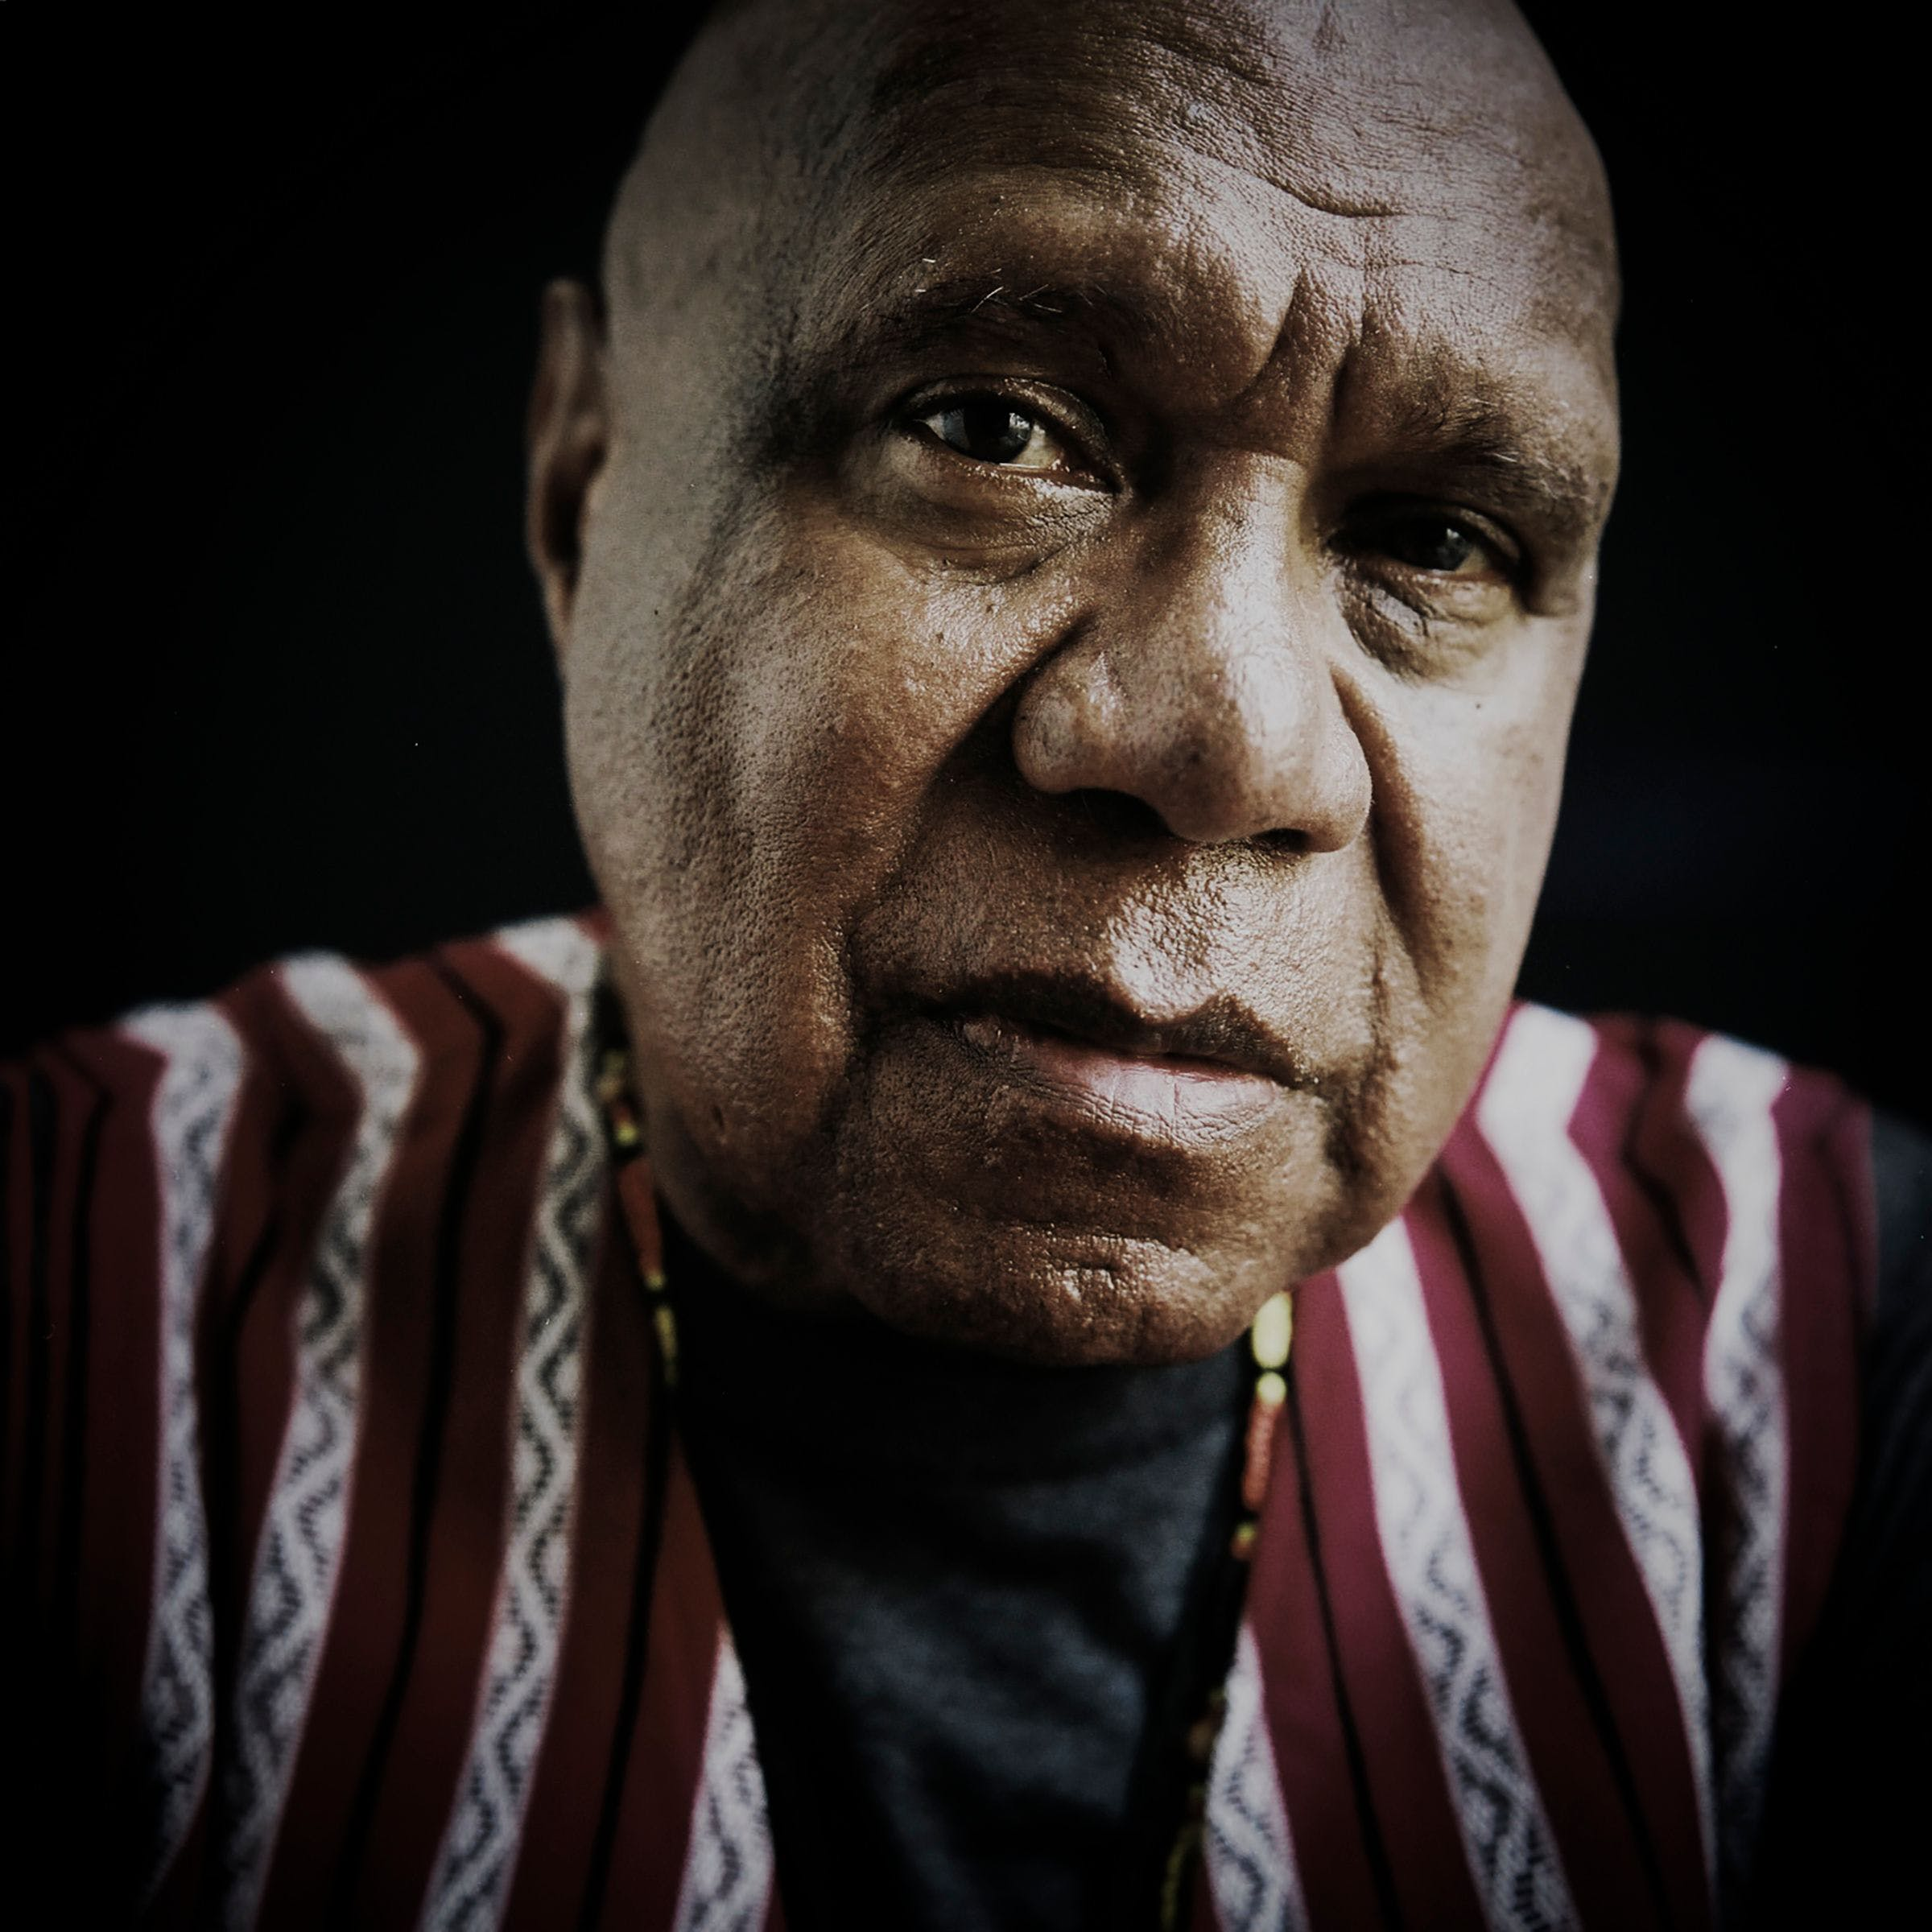 Archie Roach Tell Me Why - Foster Accommodation